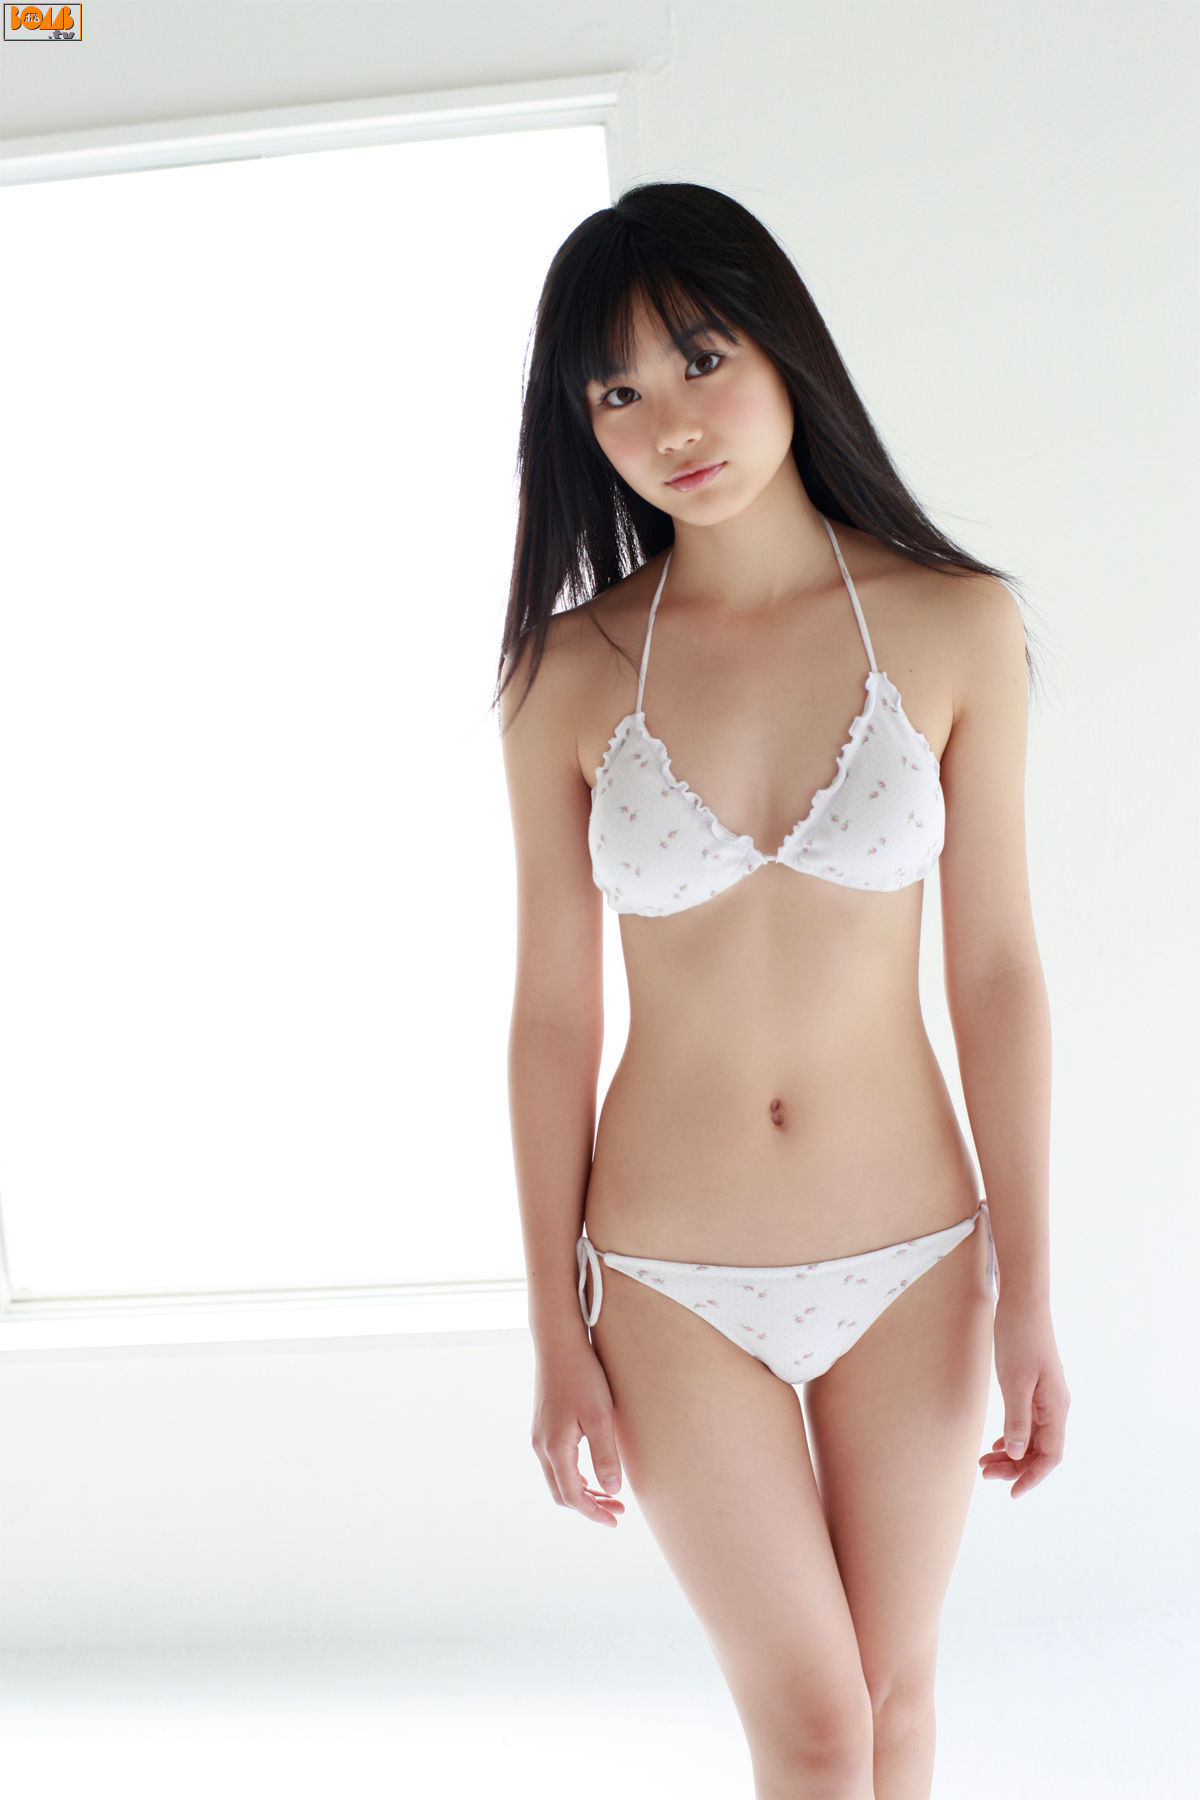 The ultimate swimsuit gravure for the next generation024